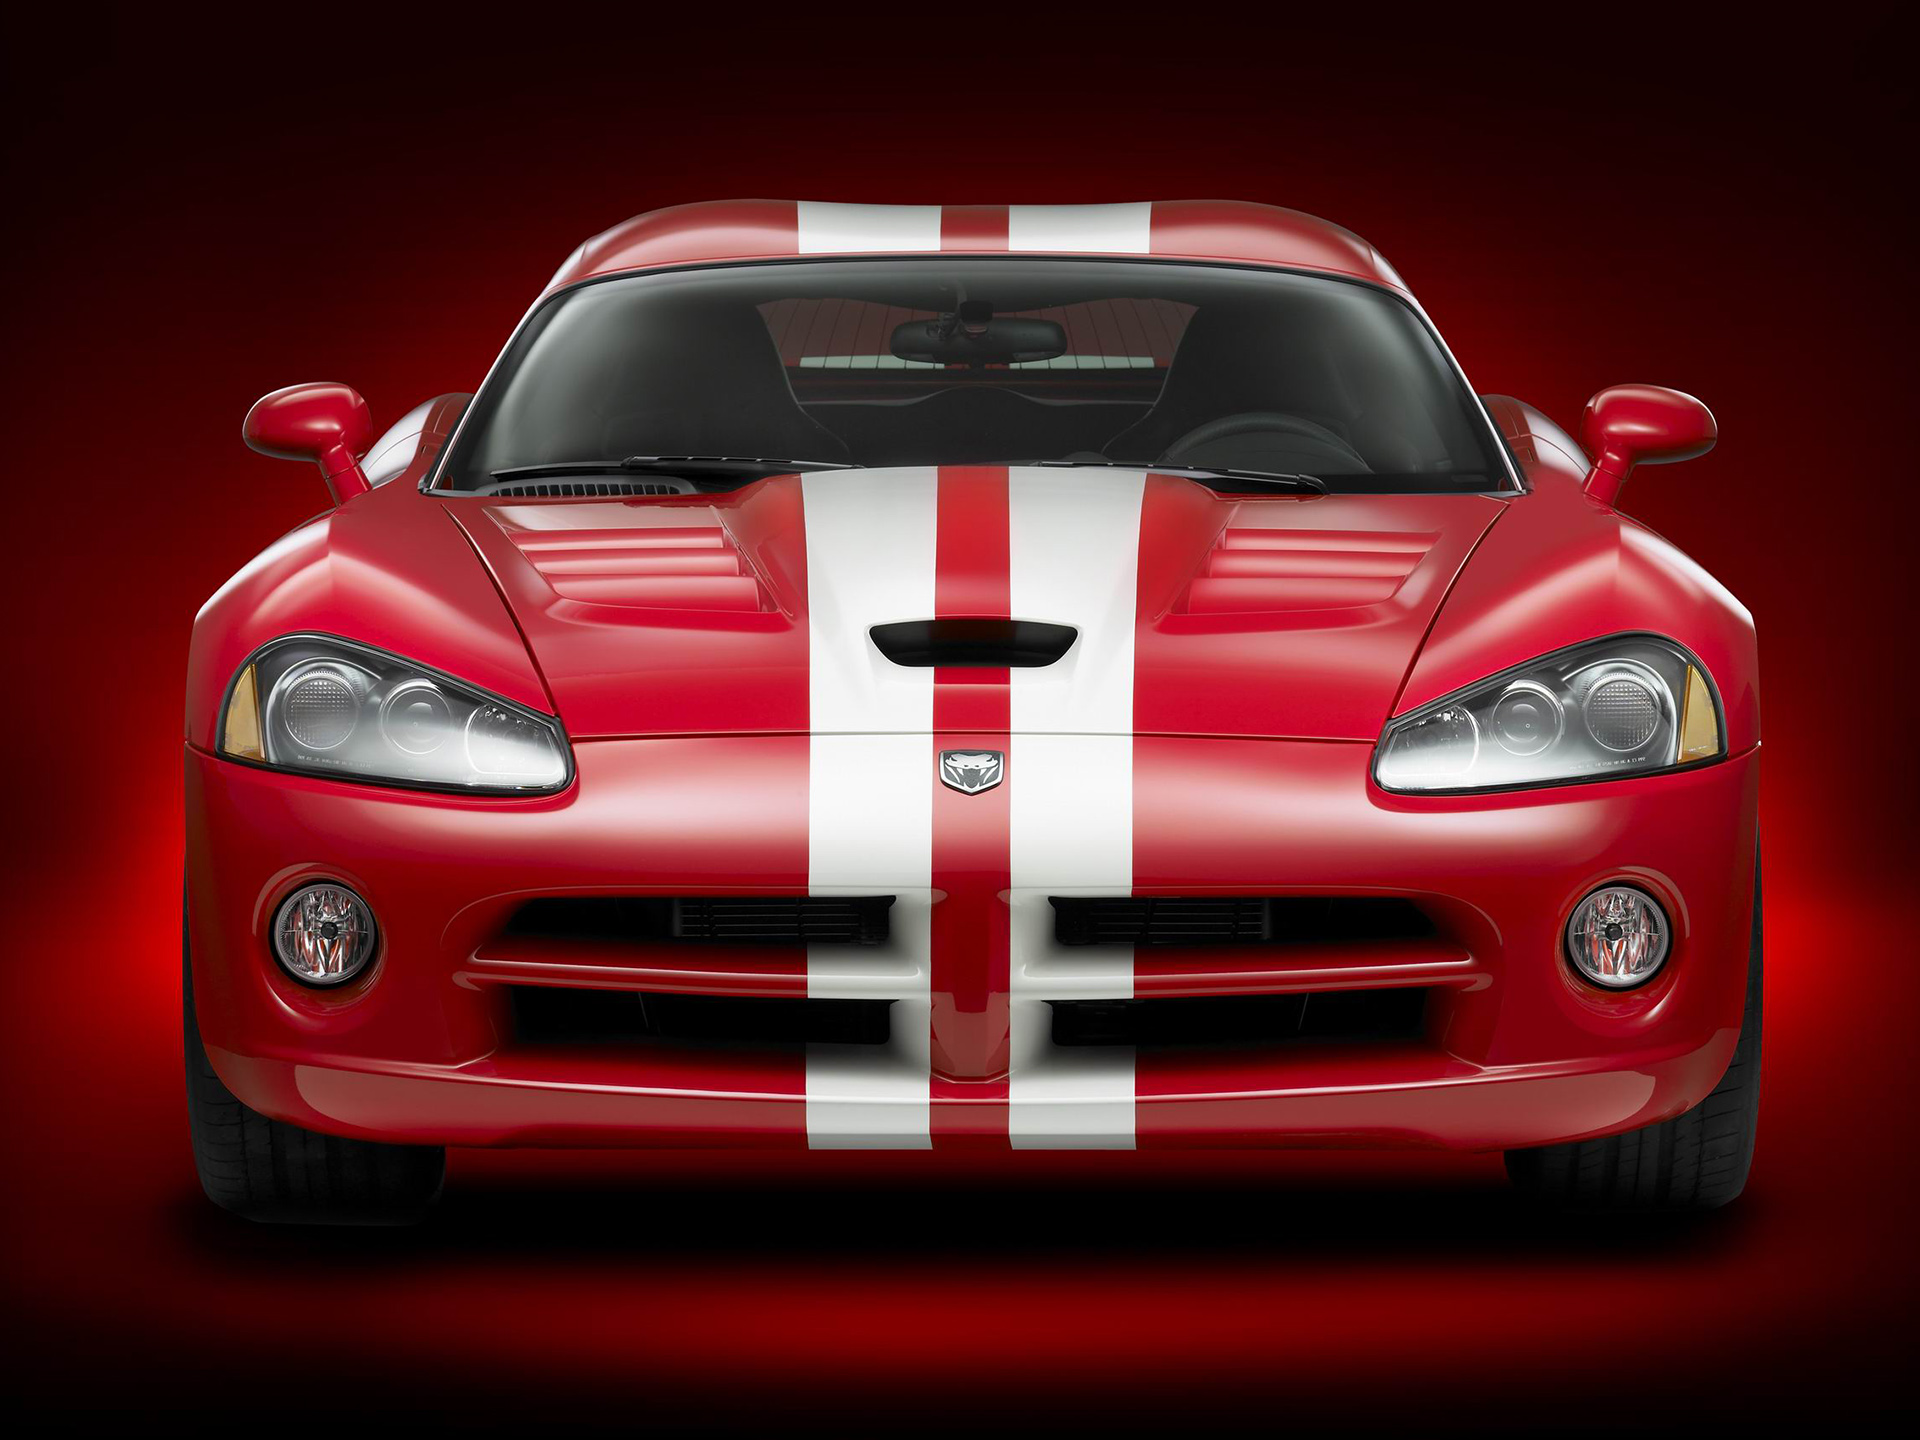 Dodge Viper SRT-10 photo 40485